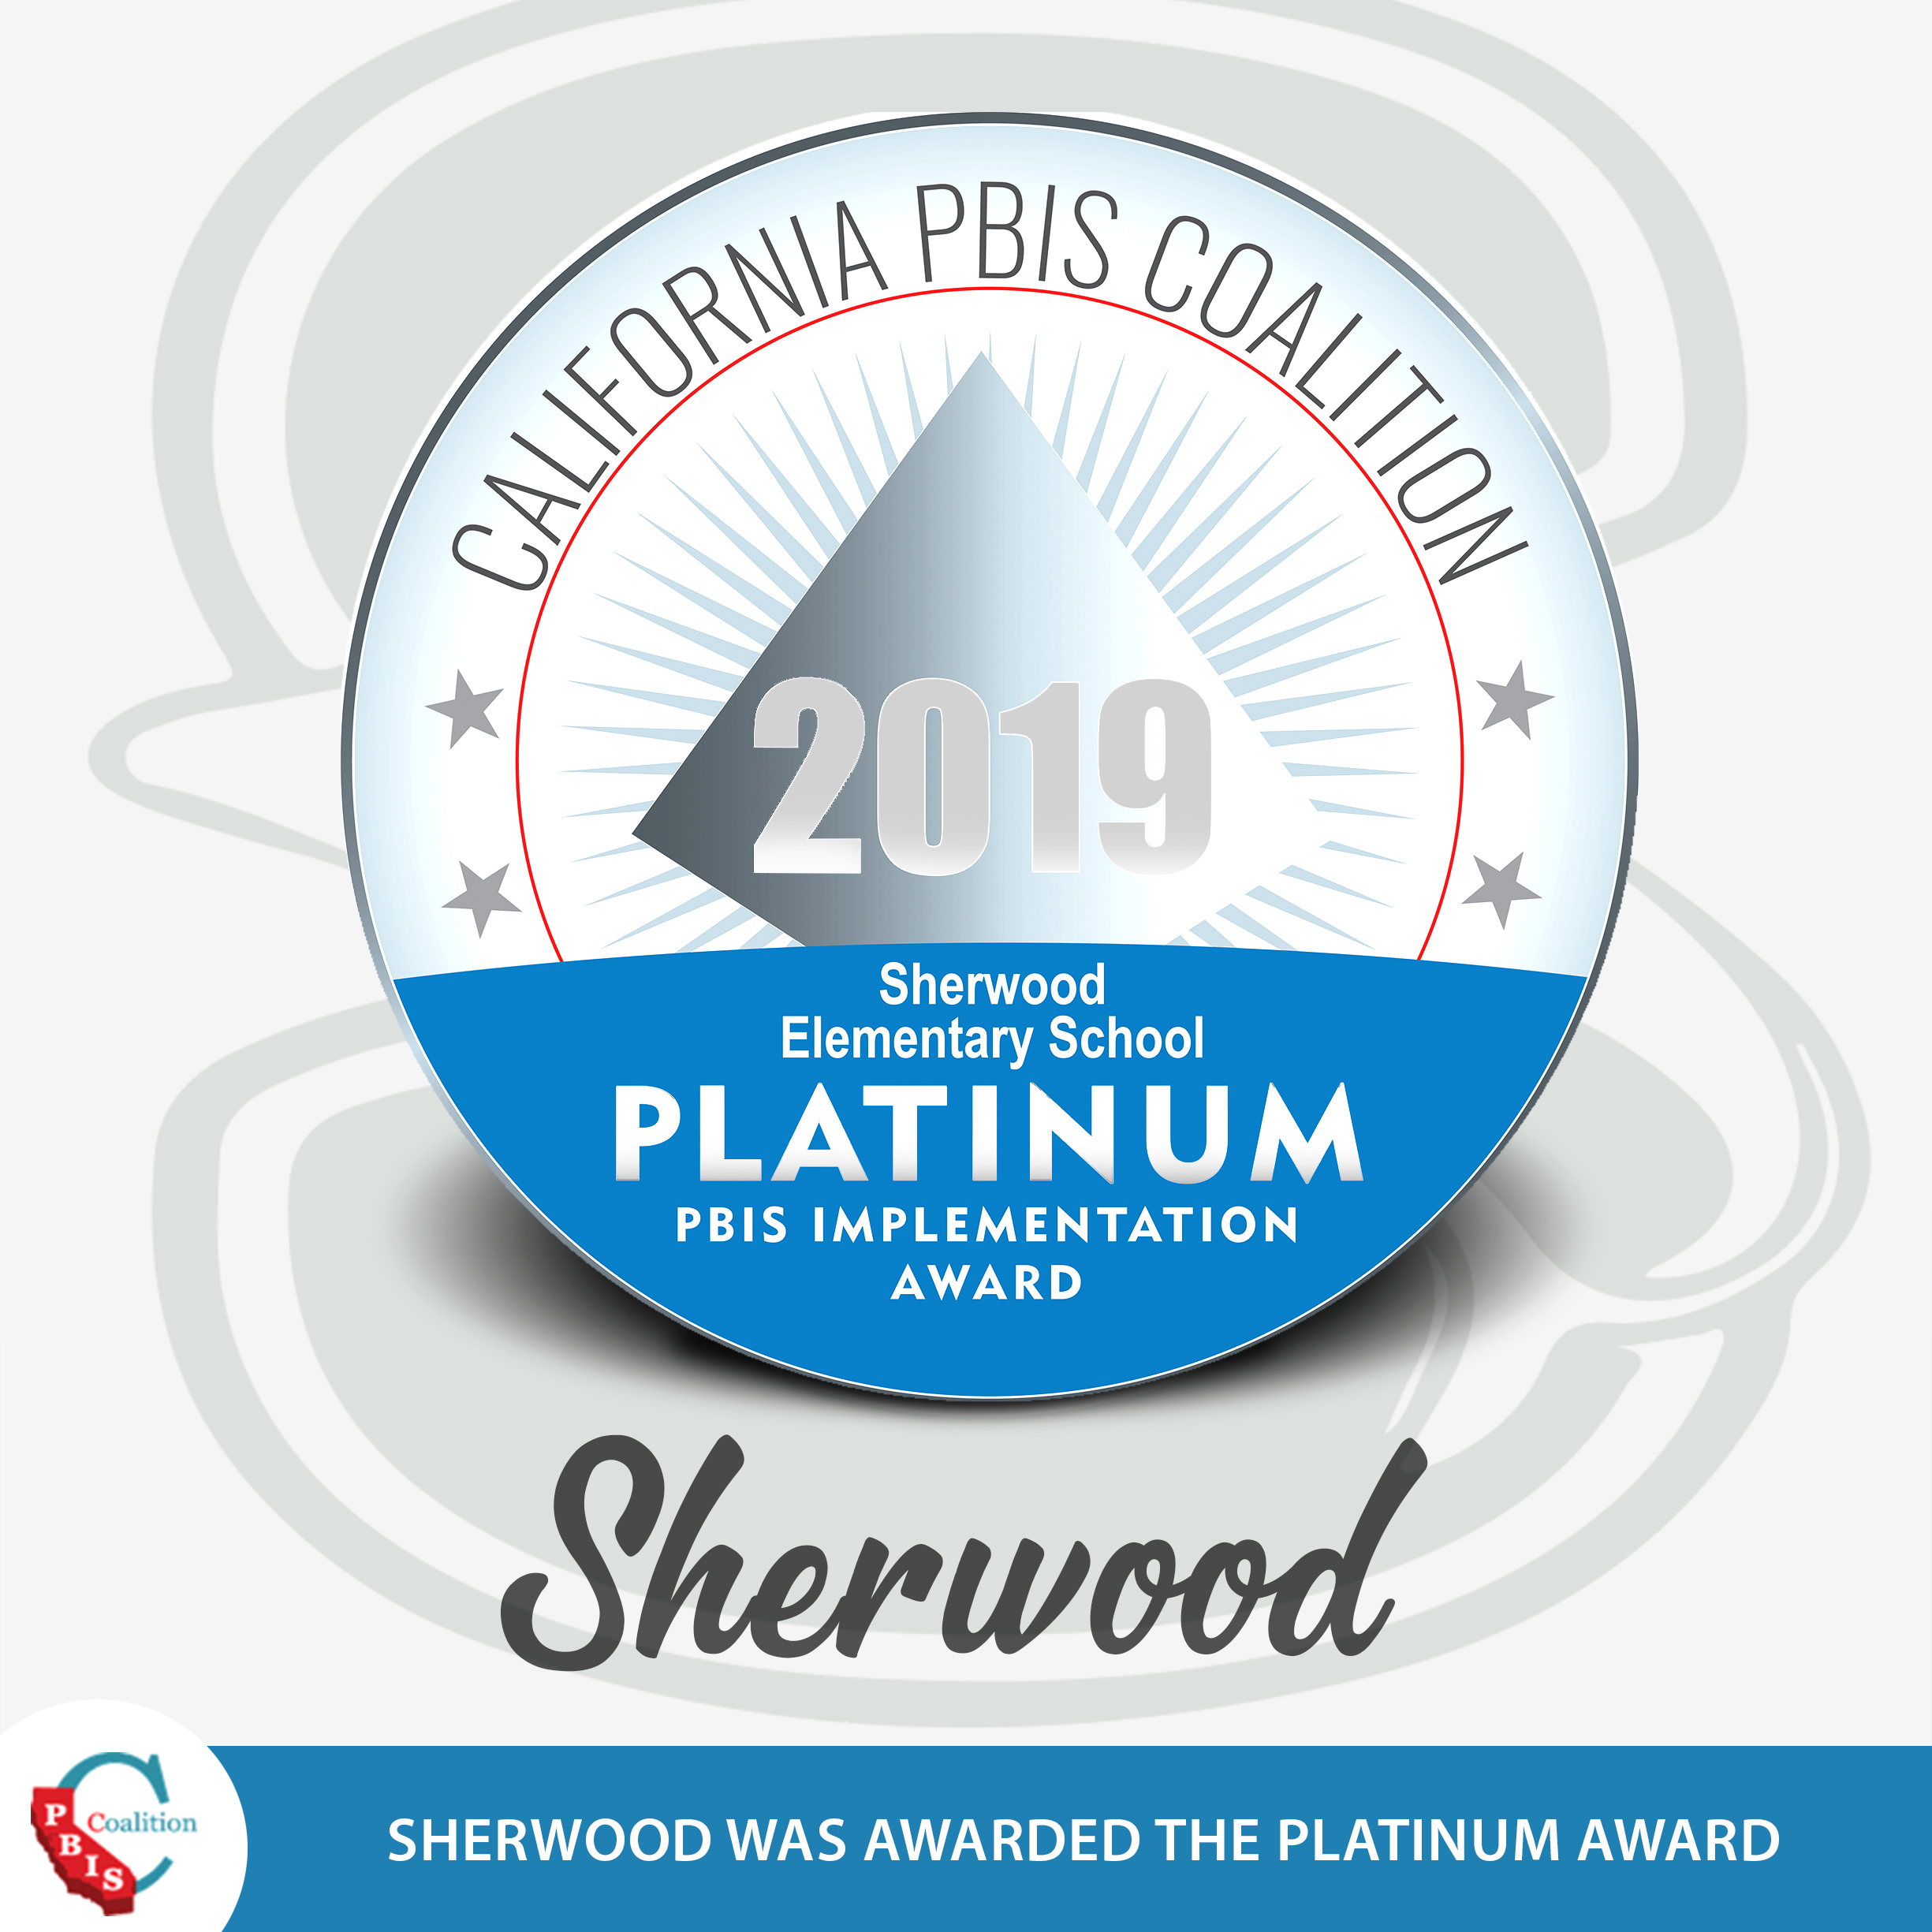 PBIS-18-19-Platinum Award-Sherwood.JPG